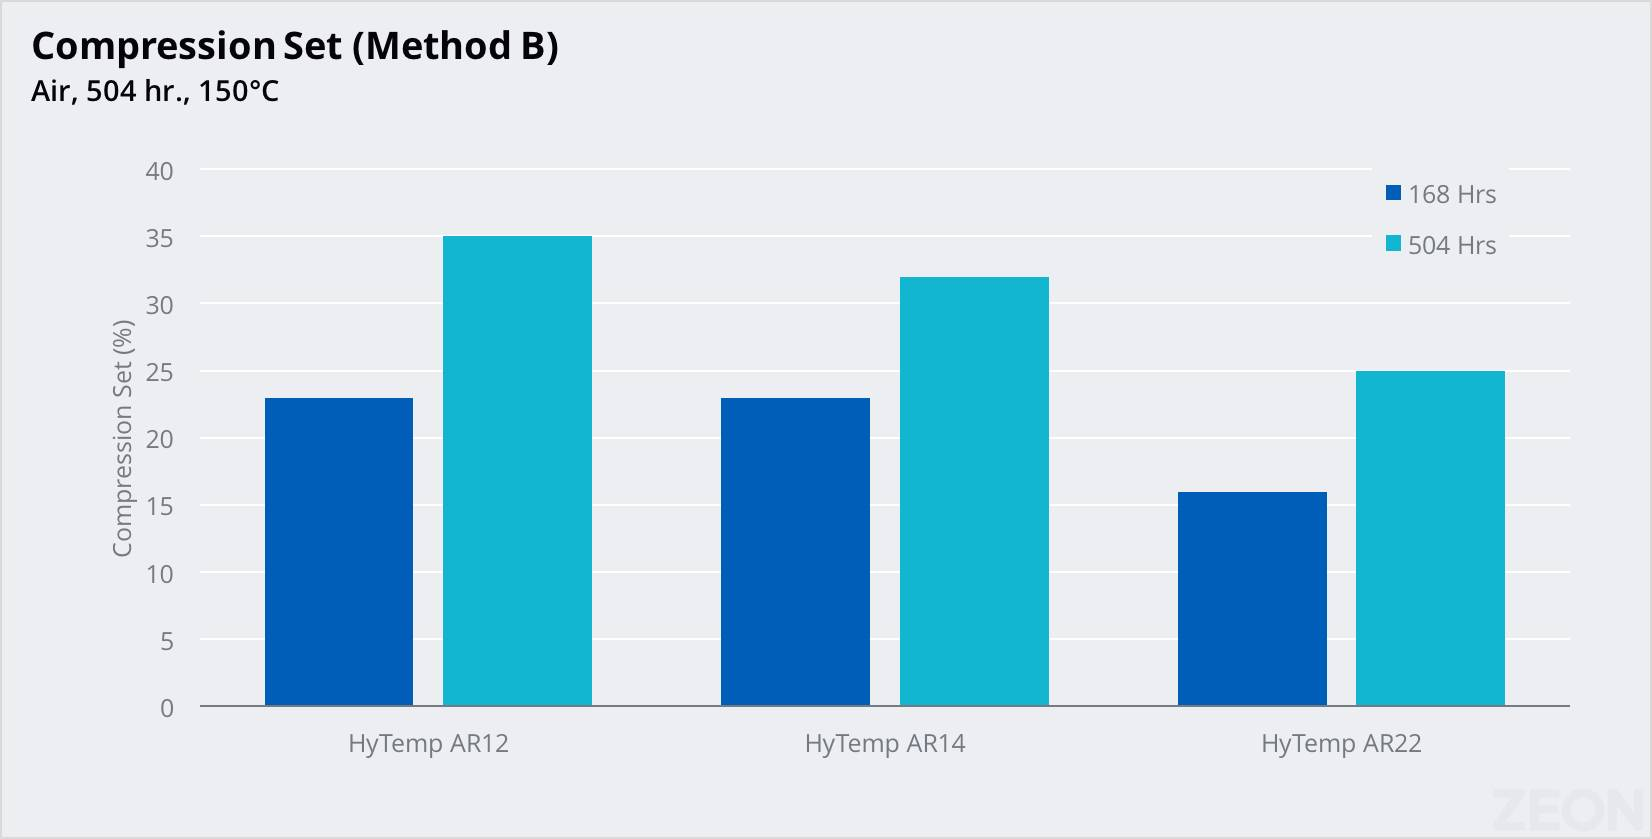 Chart showing HyTemp's compression set performance